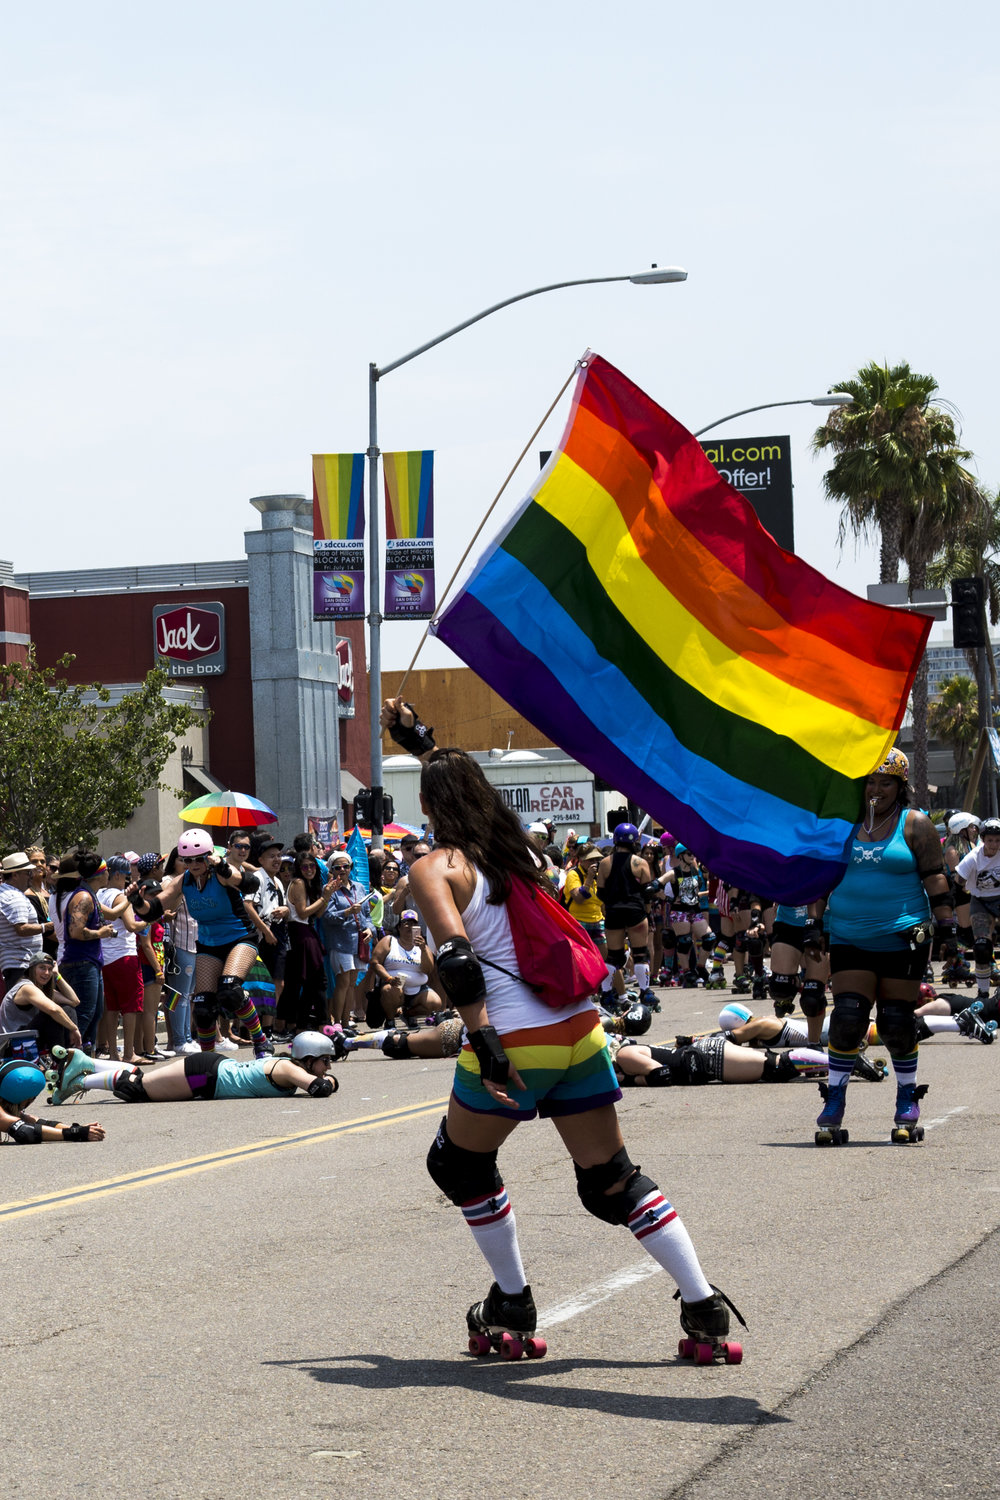 Why we will never not need LGBT History Month - LGBT history month, like many of the other history months out of the year, is about learning from mistakes made in the past, remembering how far we've come from those mistakes, preventing those mistakes from happening again, and moving away from the erasure that has been so widespread in our history lessons of the past.